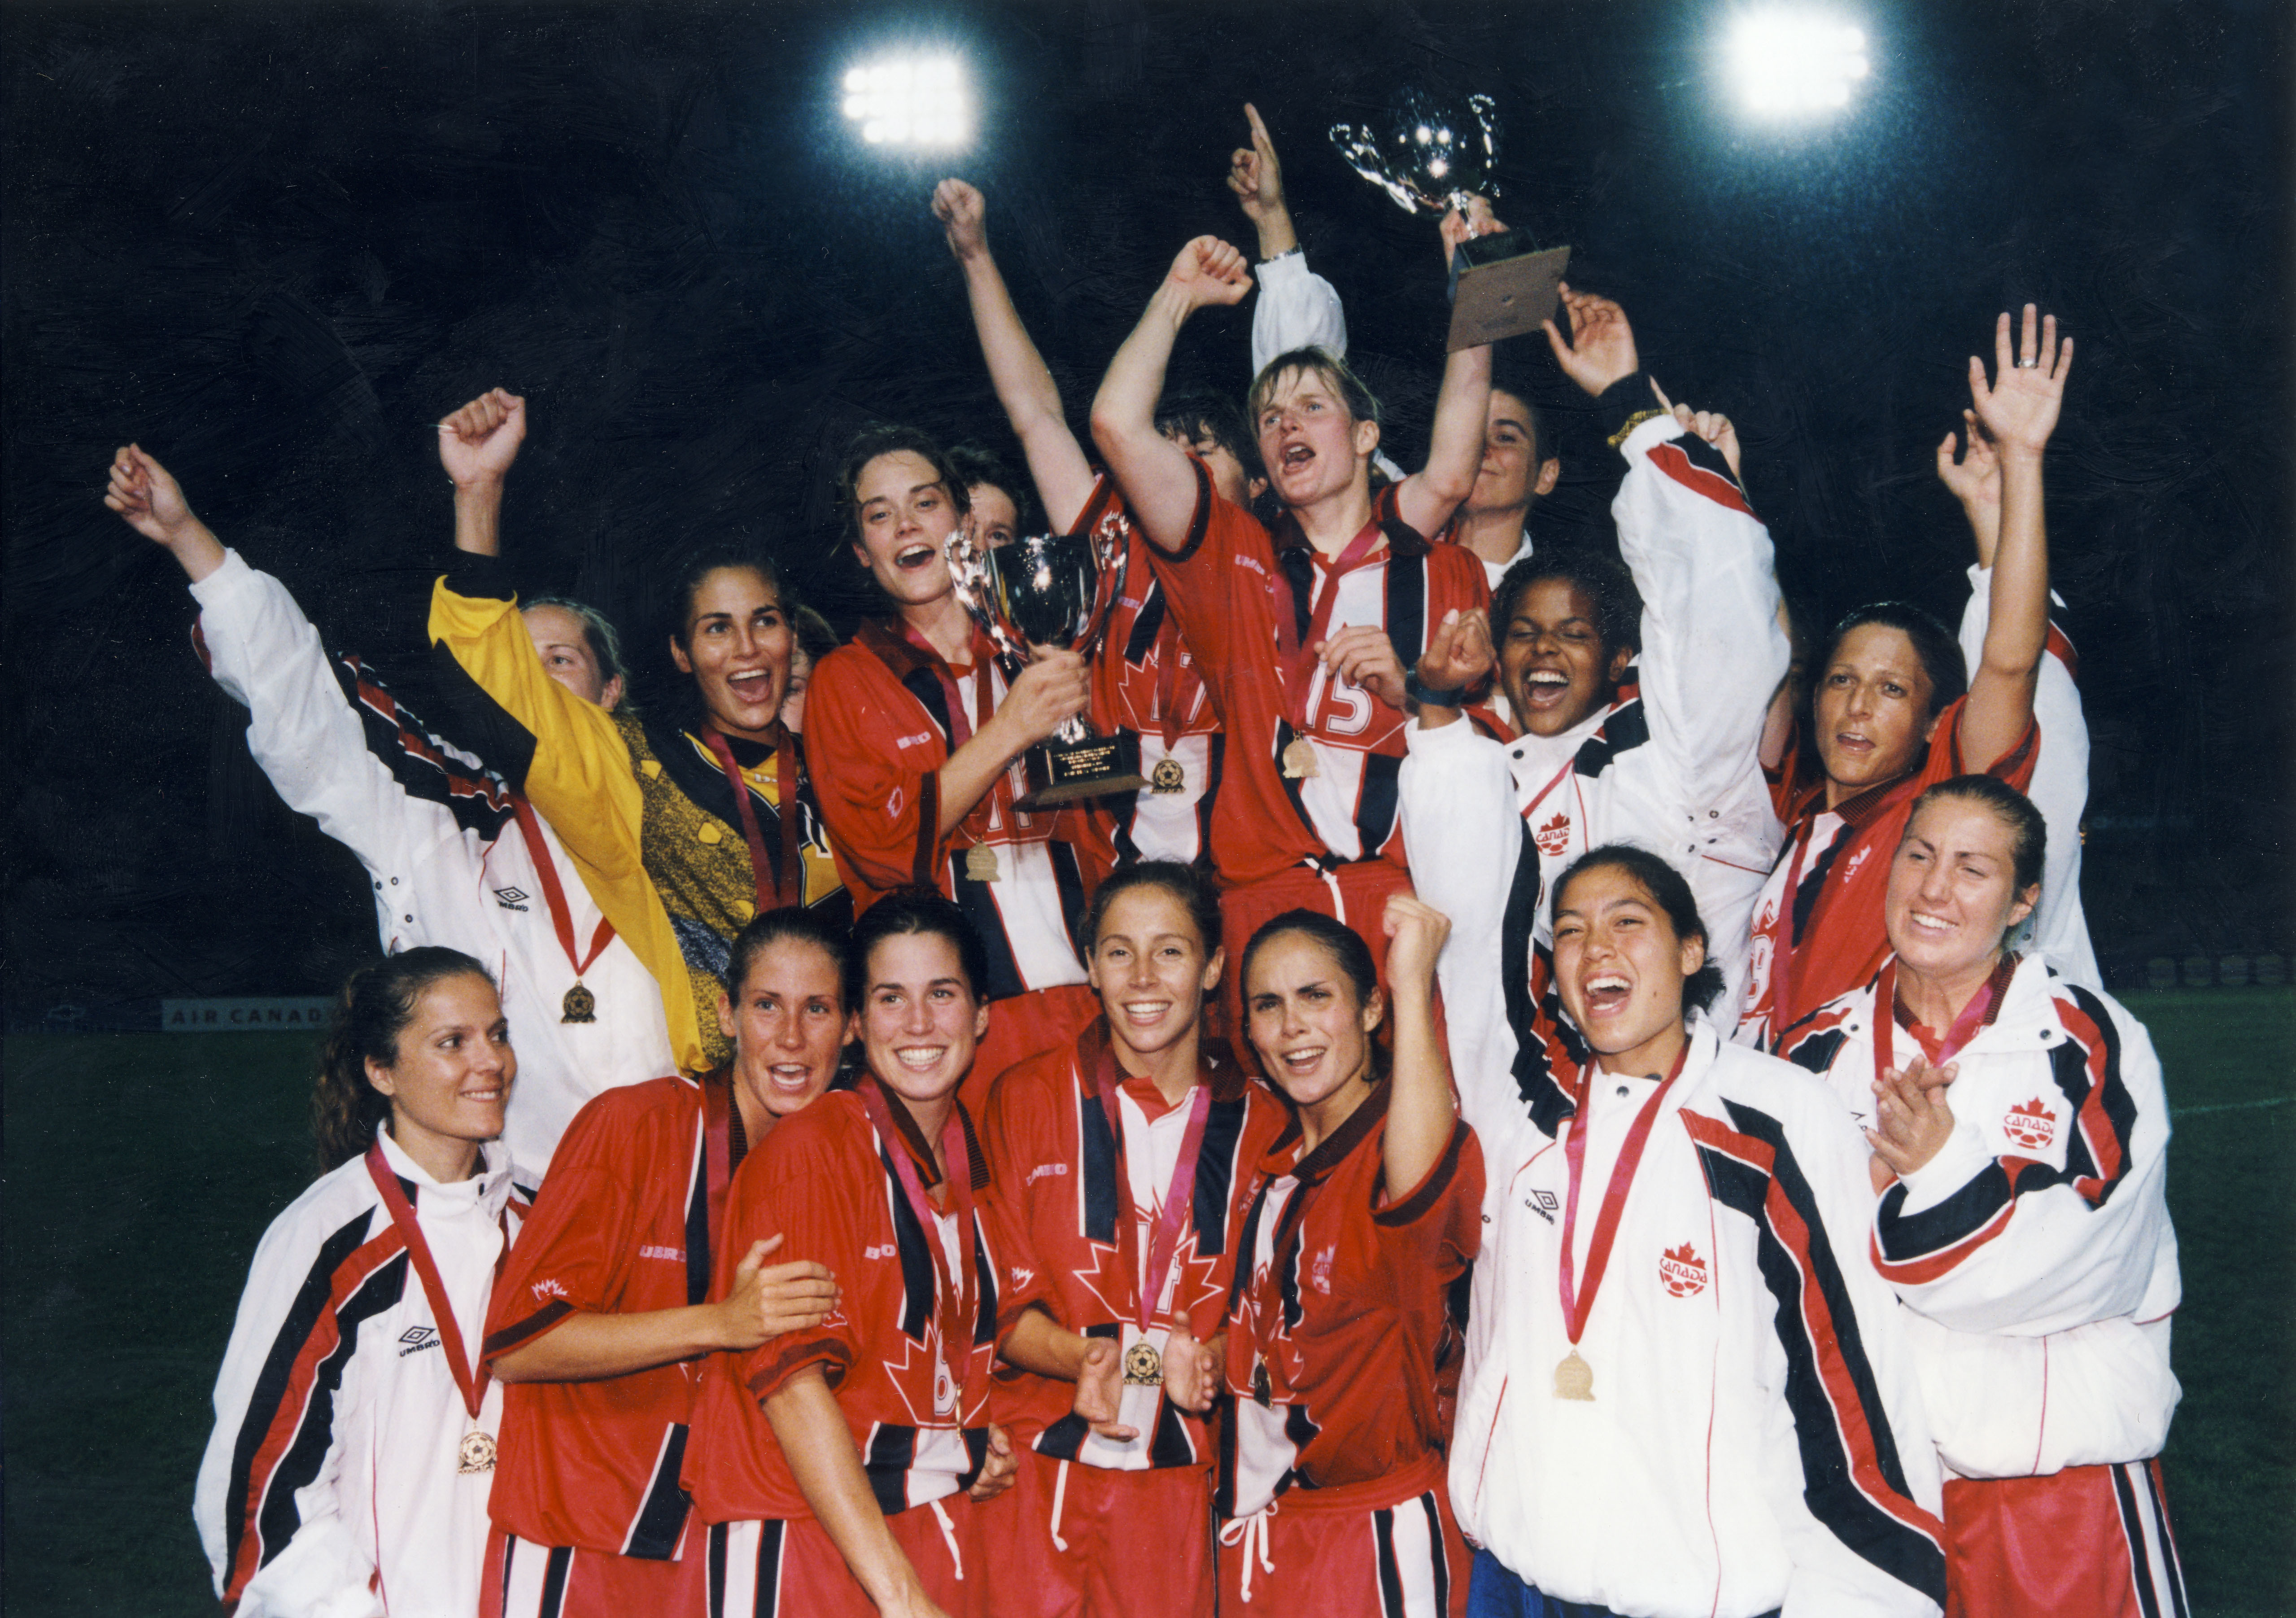 Canada's women's team, 1998 CONCACAF Champions. (Canada Soccer)